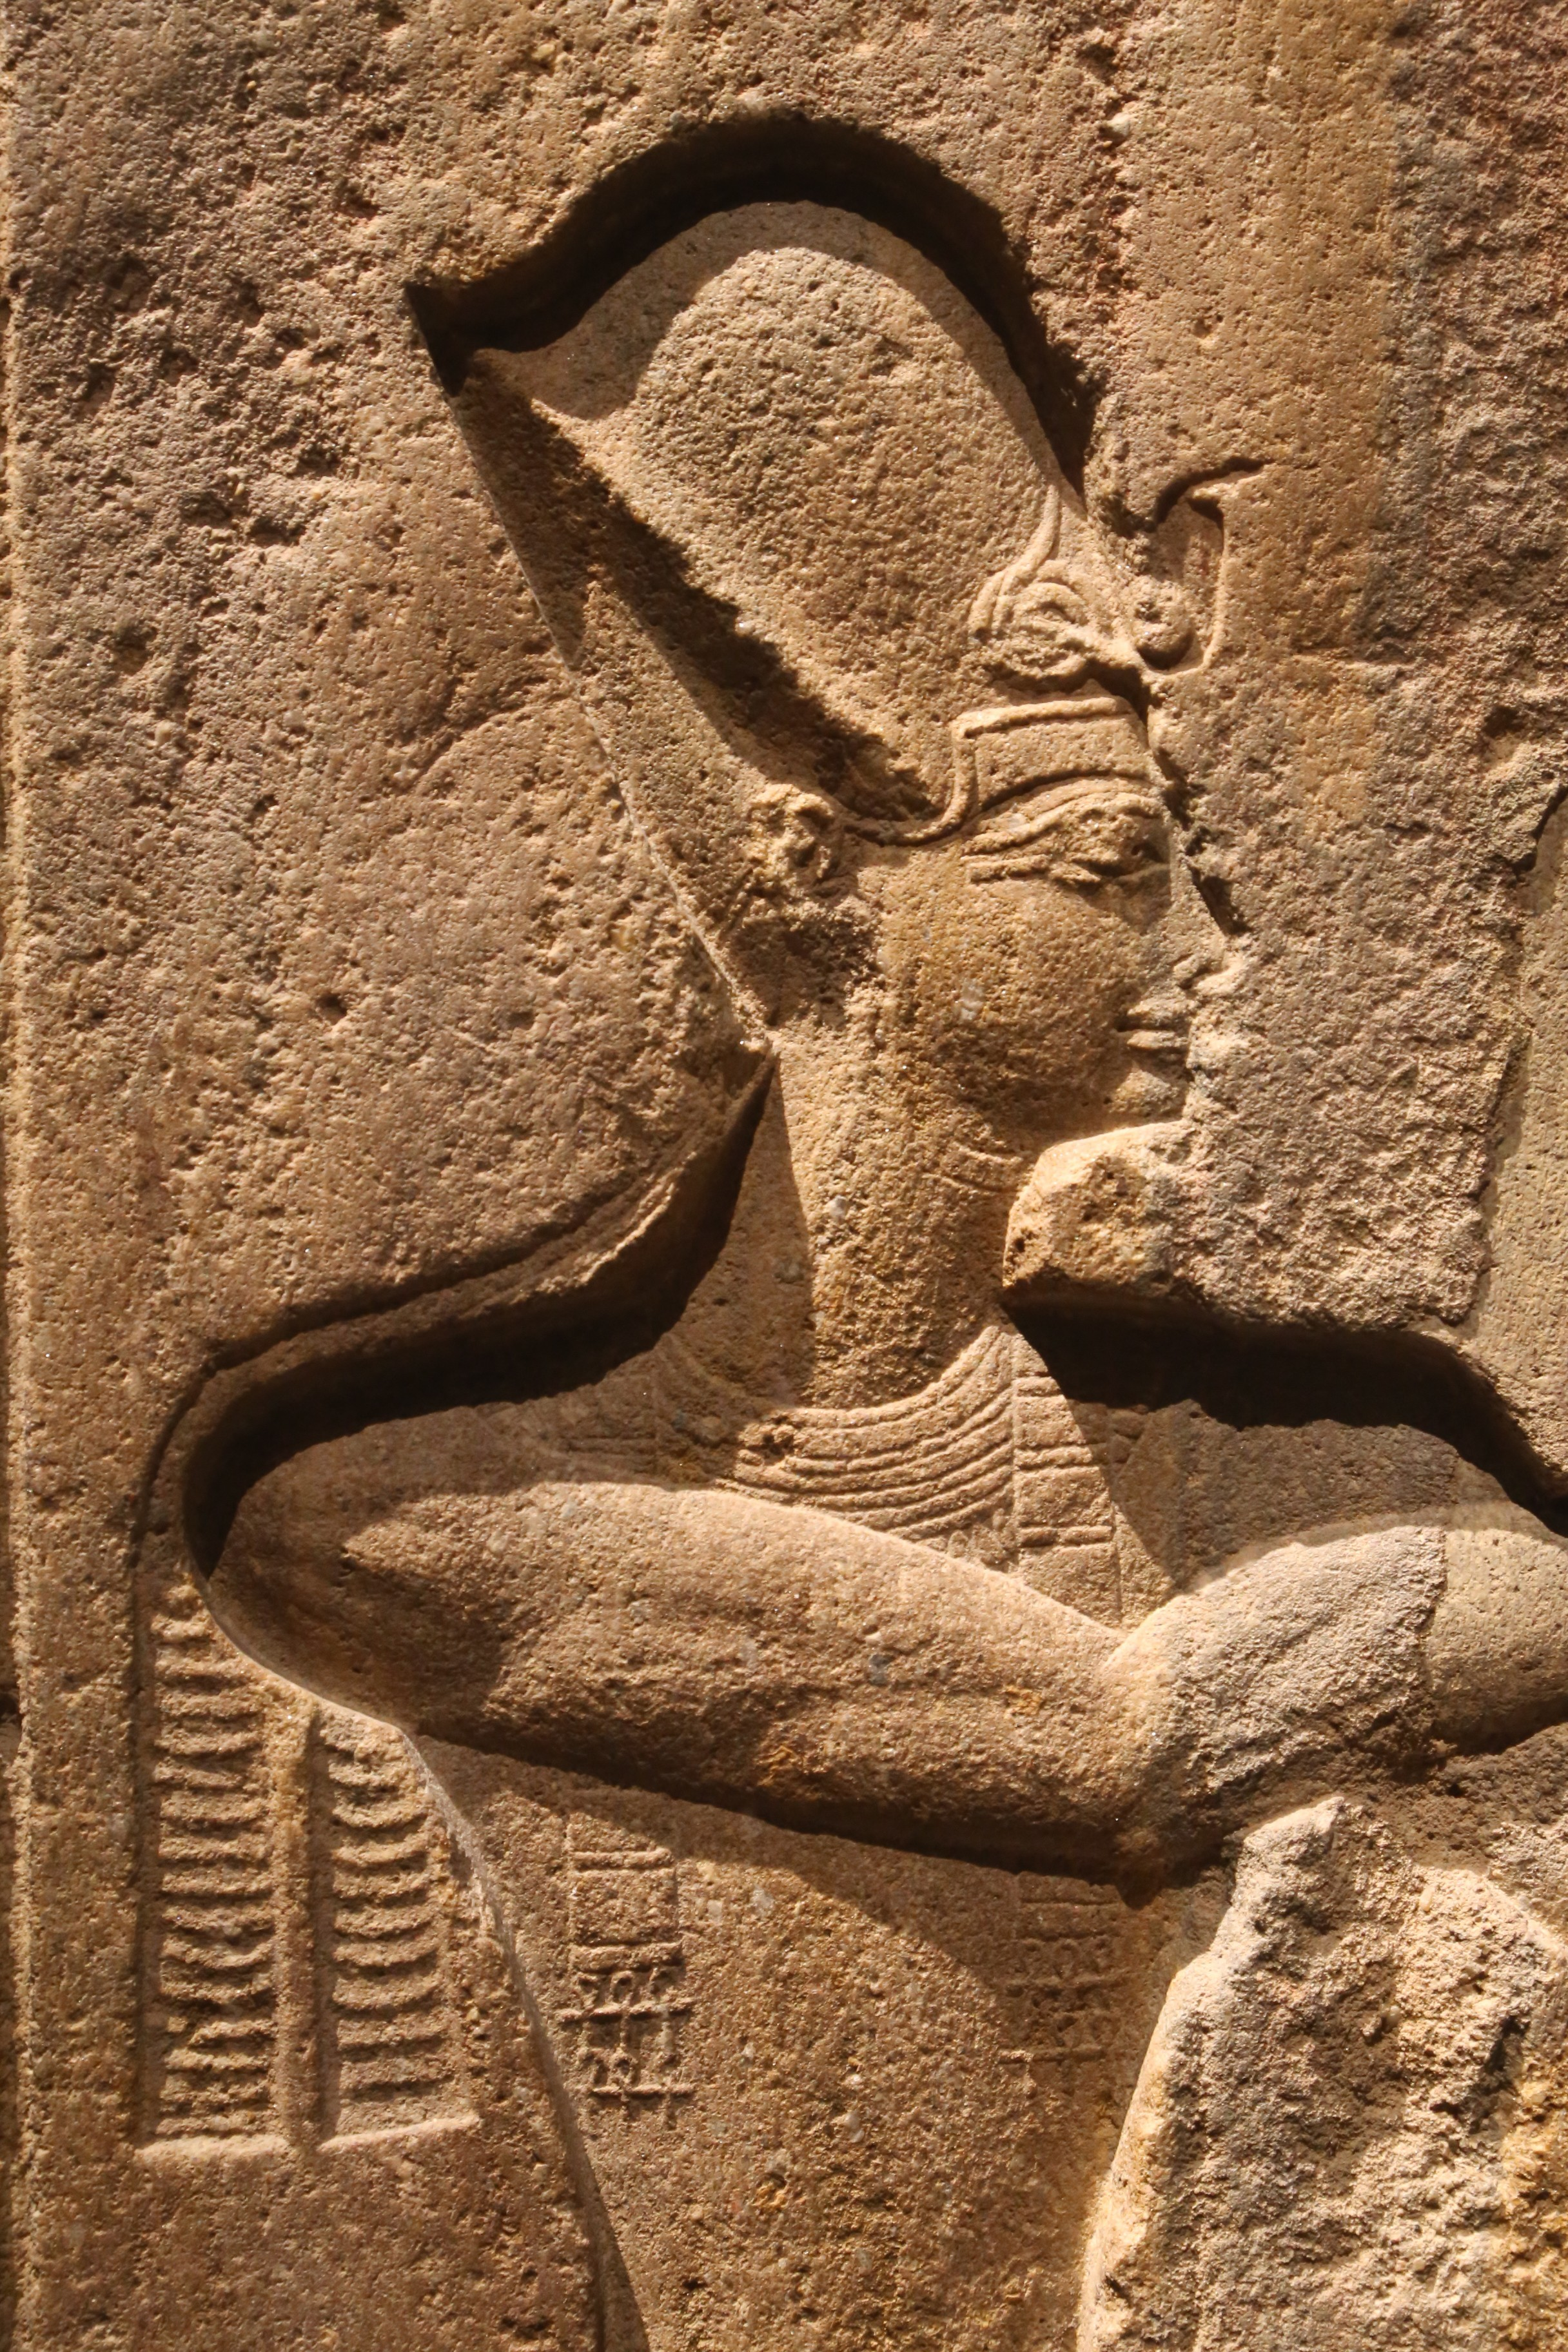 ramses iis victory Ramses the great, the pharaoh who made peace with his enemies and the first peace treaty in history  ramses ii,  turning the defeat into victory.